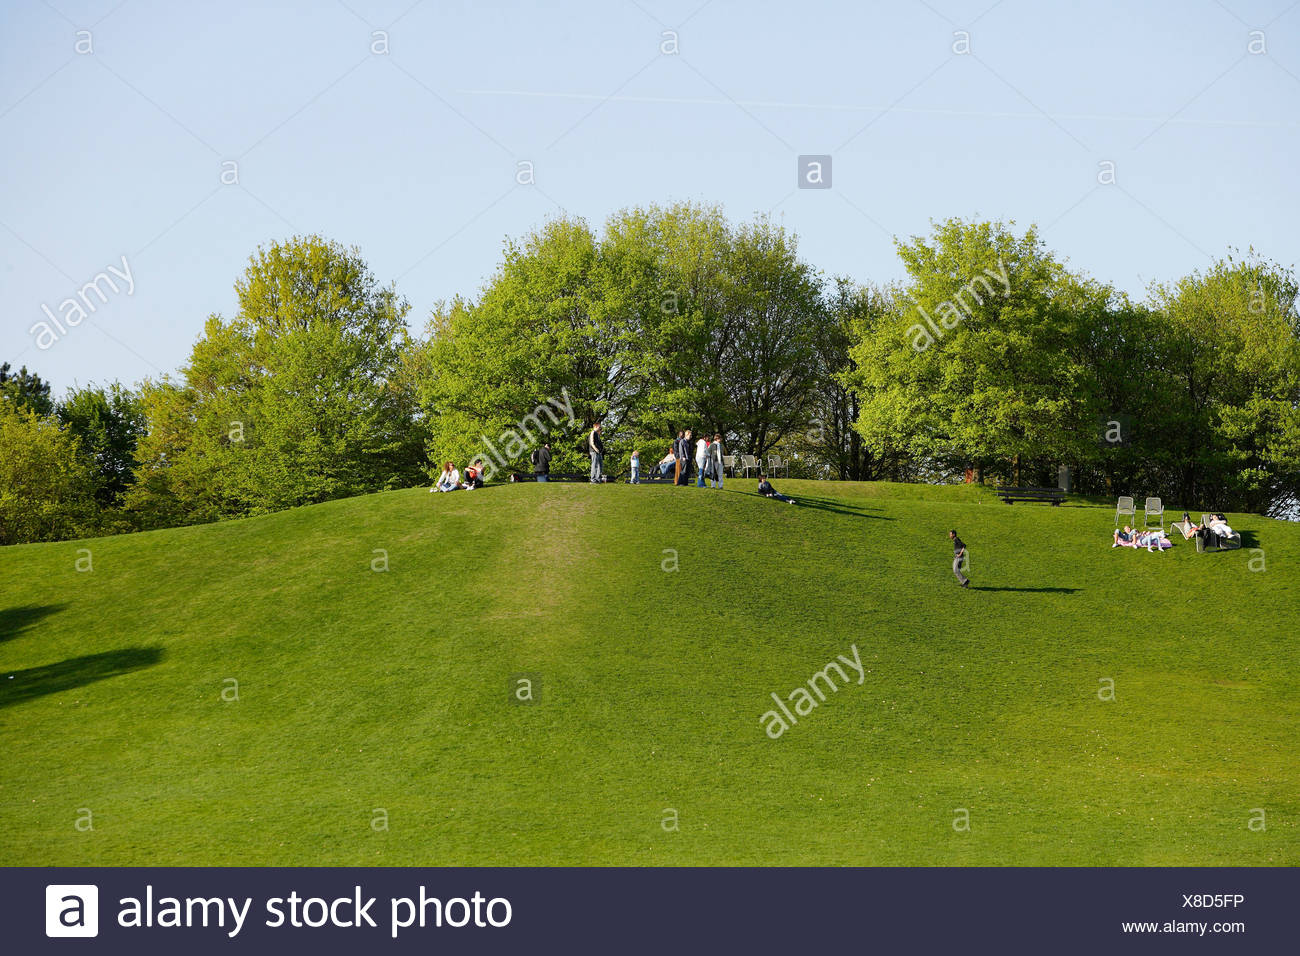 Meadow and hill in the Britzer Garten park in Berlin, Germany, Europe Stock Photo